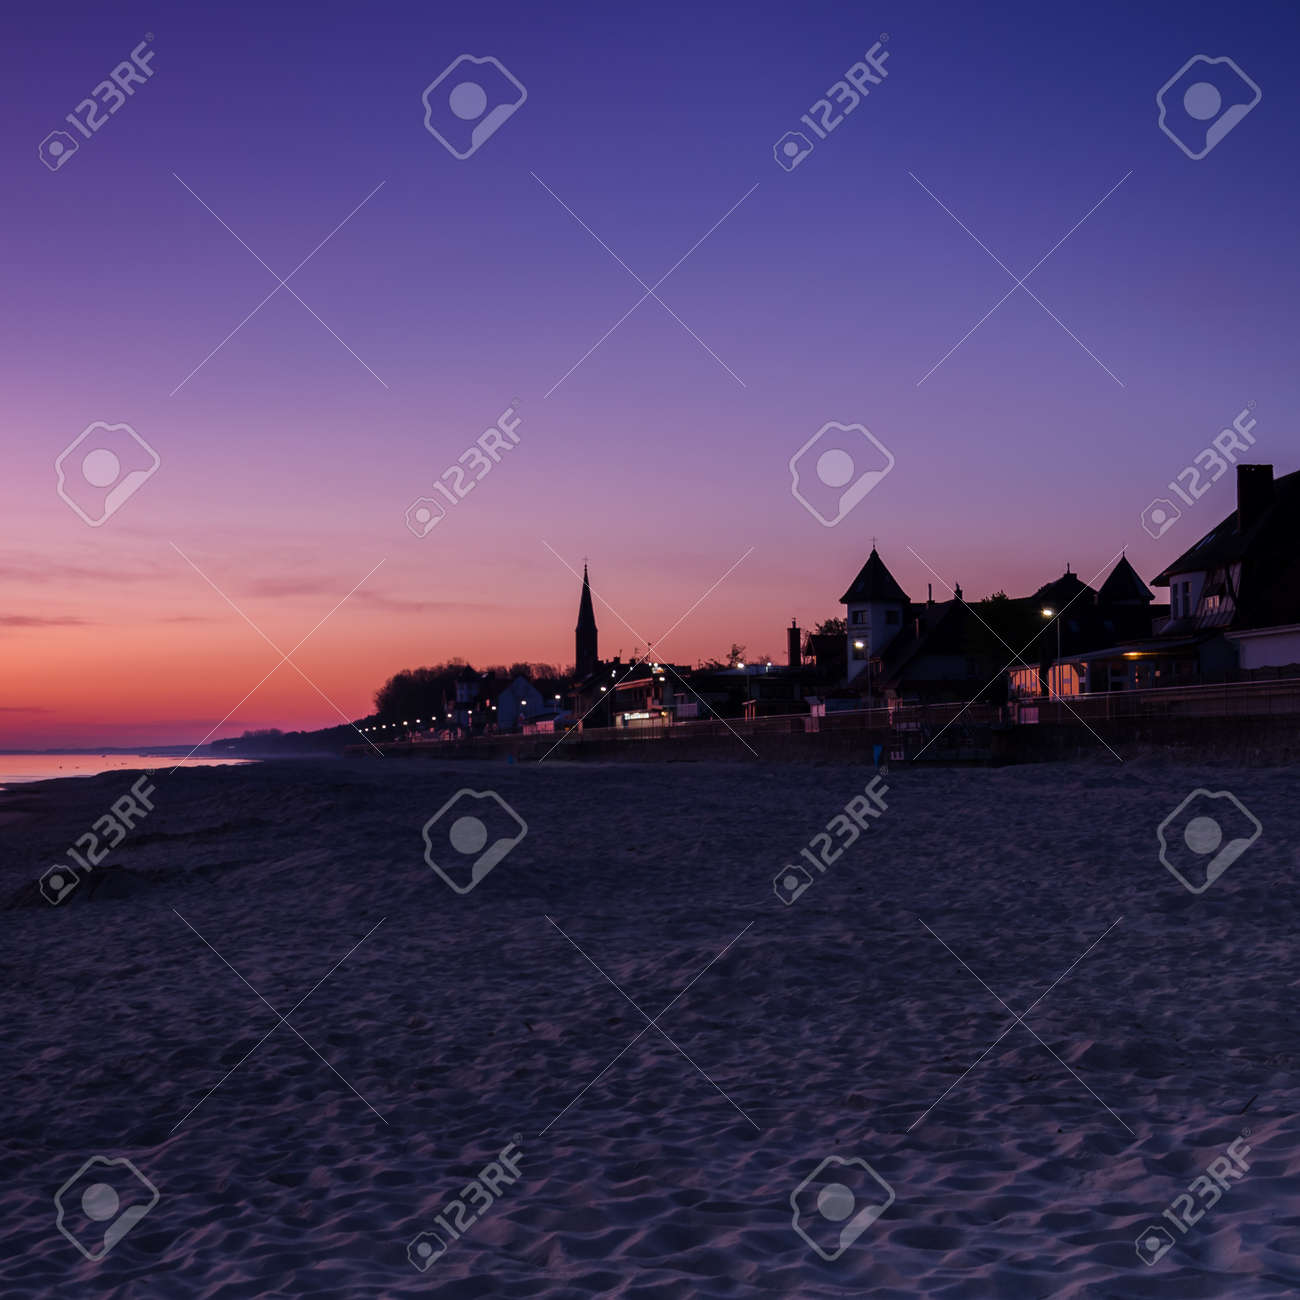 DAWN AT THE SEASIDE - Sunrise, beach and resorts in the countryside - 169541106